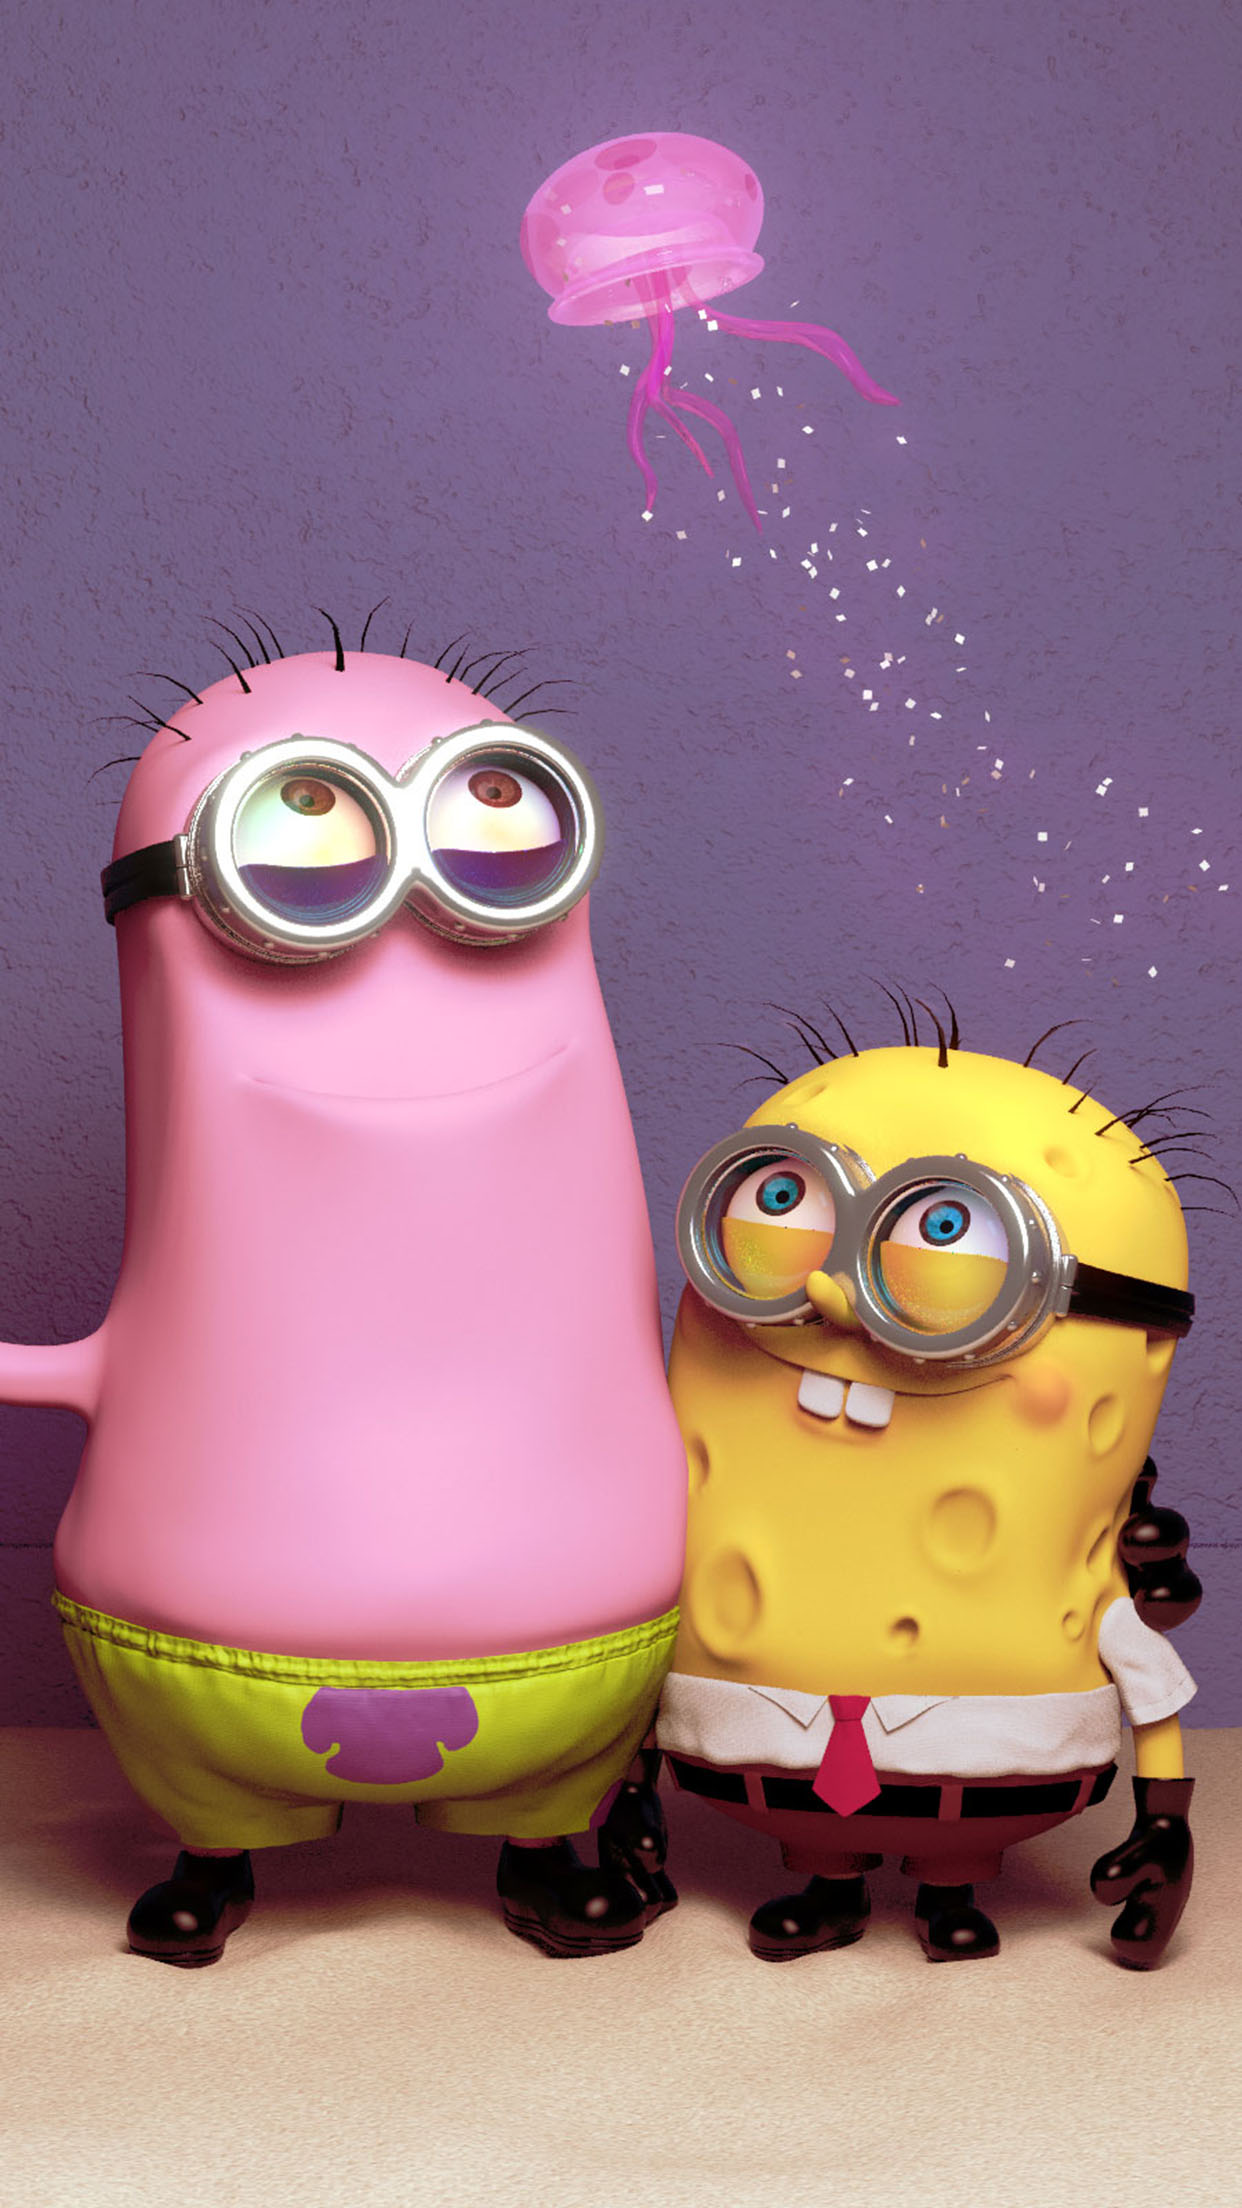 Despicable Me Sponge and Patrick 3Wallpapers iPhone Parallax Despicable Me art: Sponge and Patrick